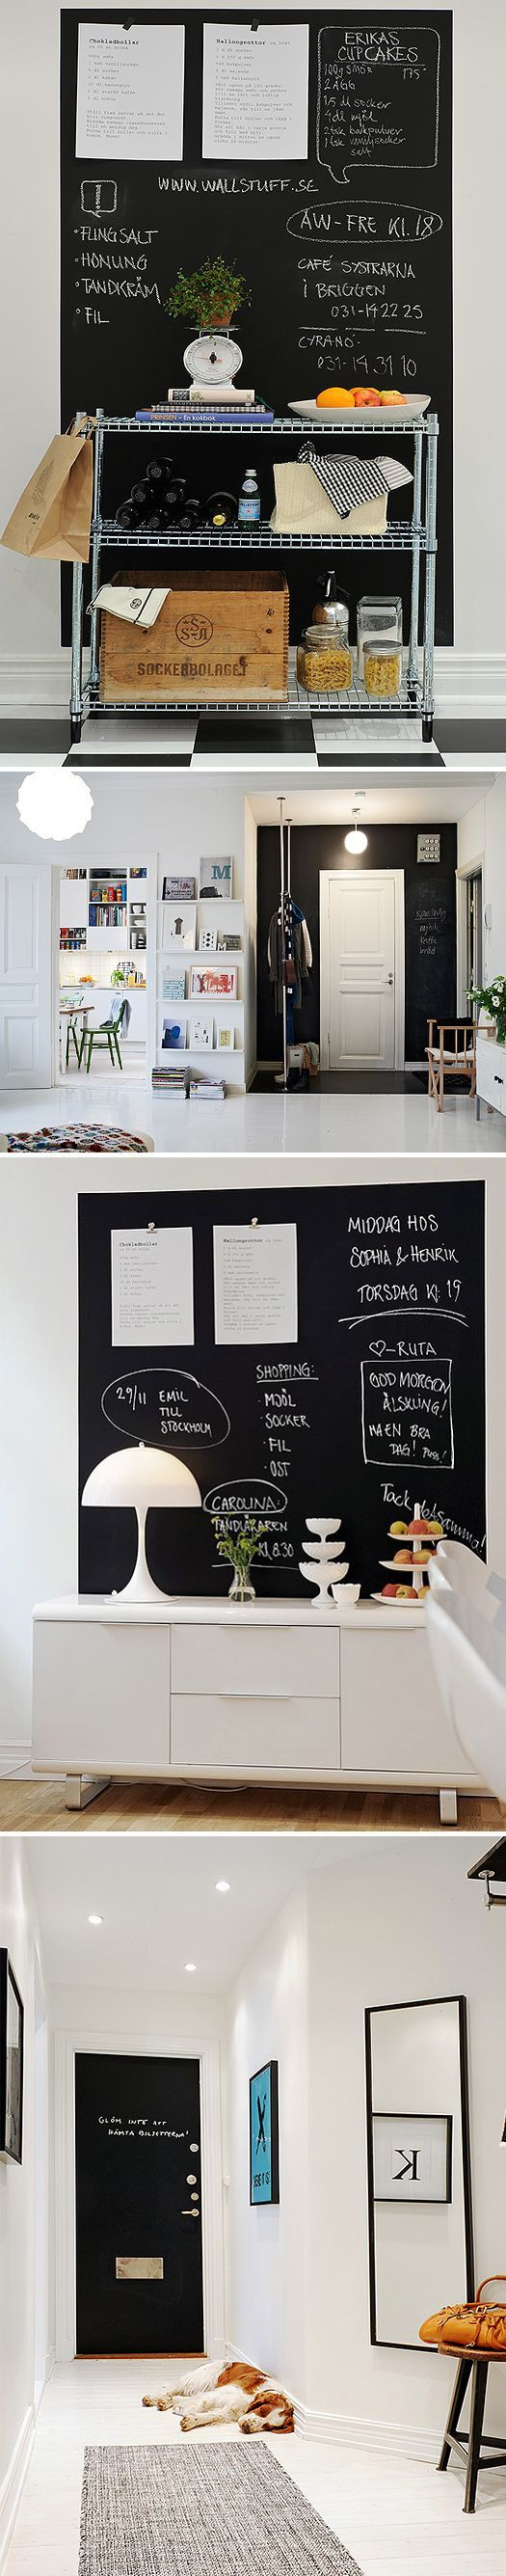 Chalkboard walls mixed with framed art. Are you looking for unique and beautiful art photo prints to create your gallery wall... Visit bx3foto.etsy.com